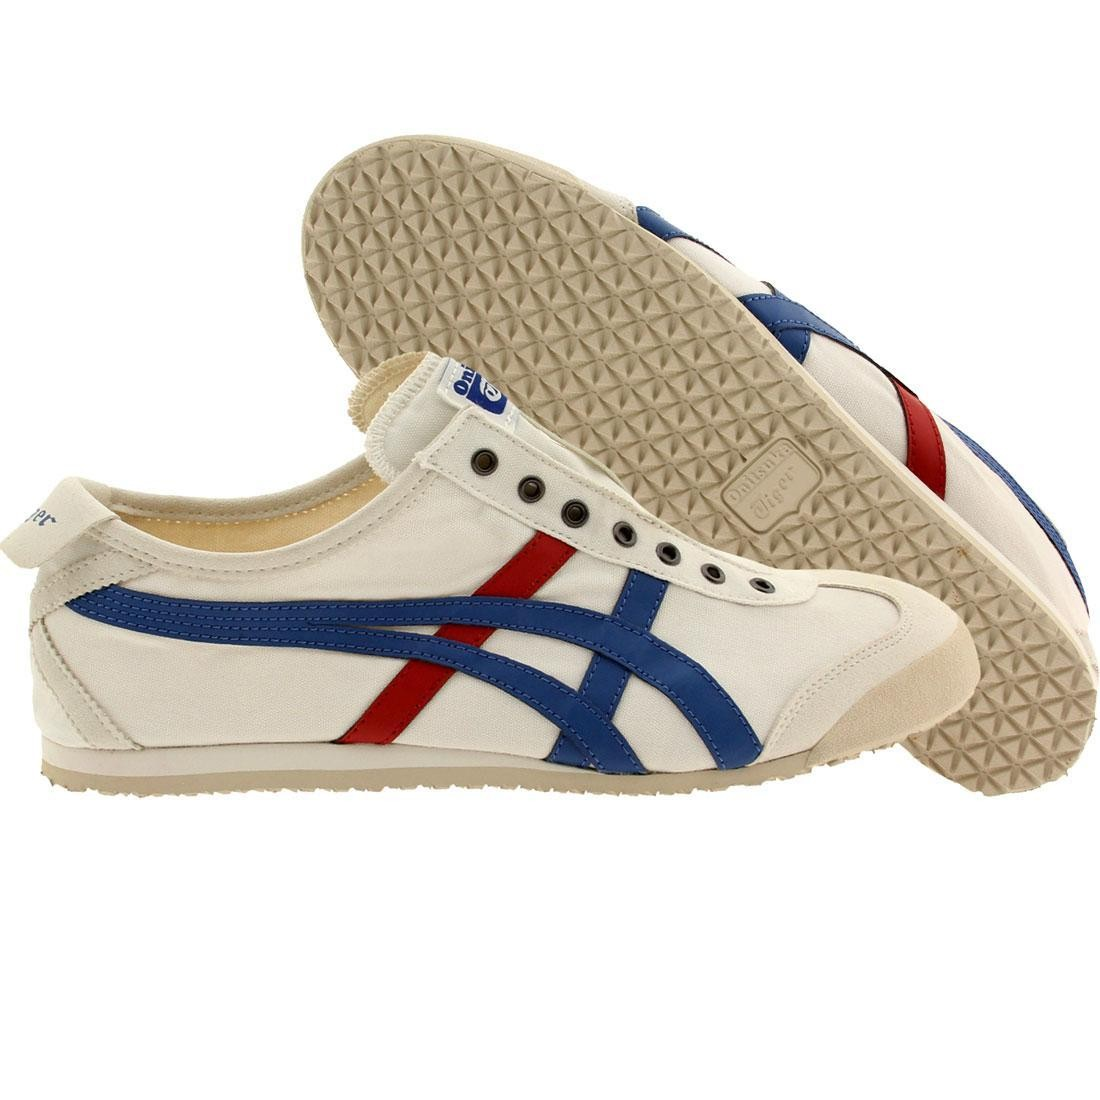 asics tiger slip on